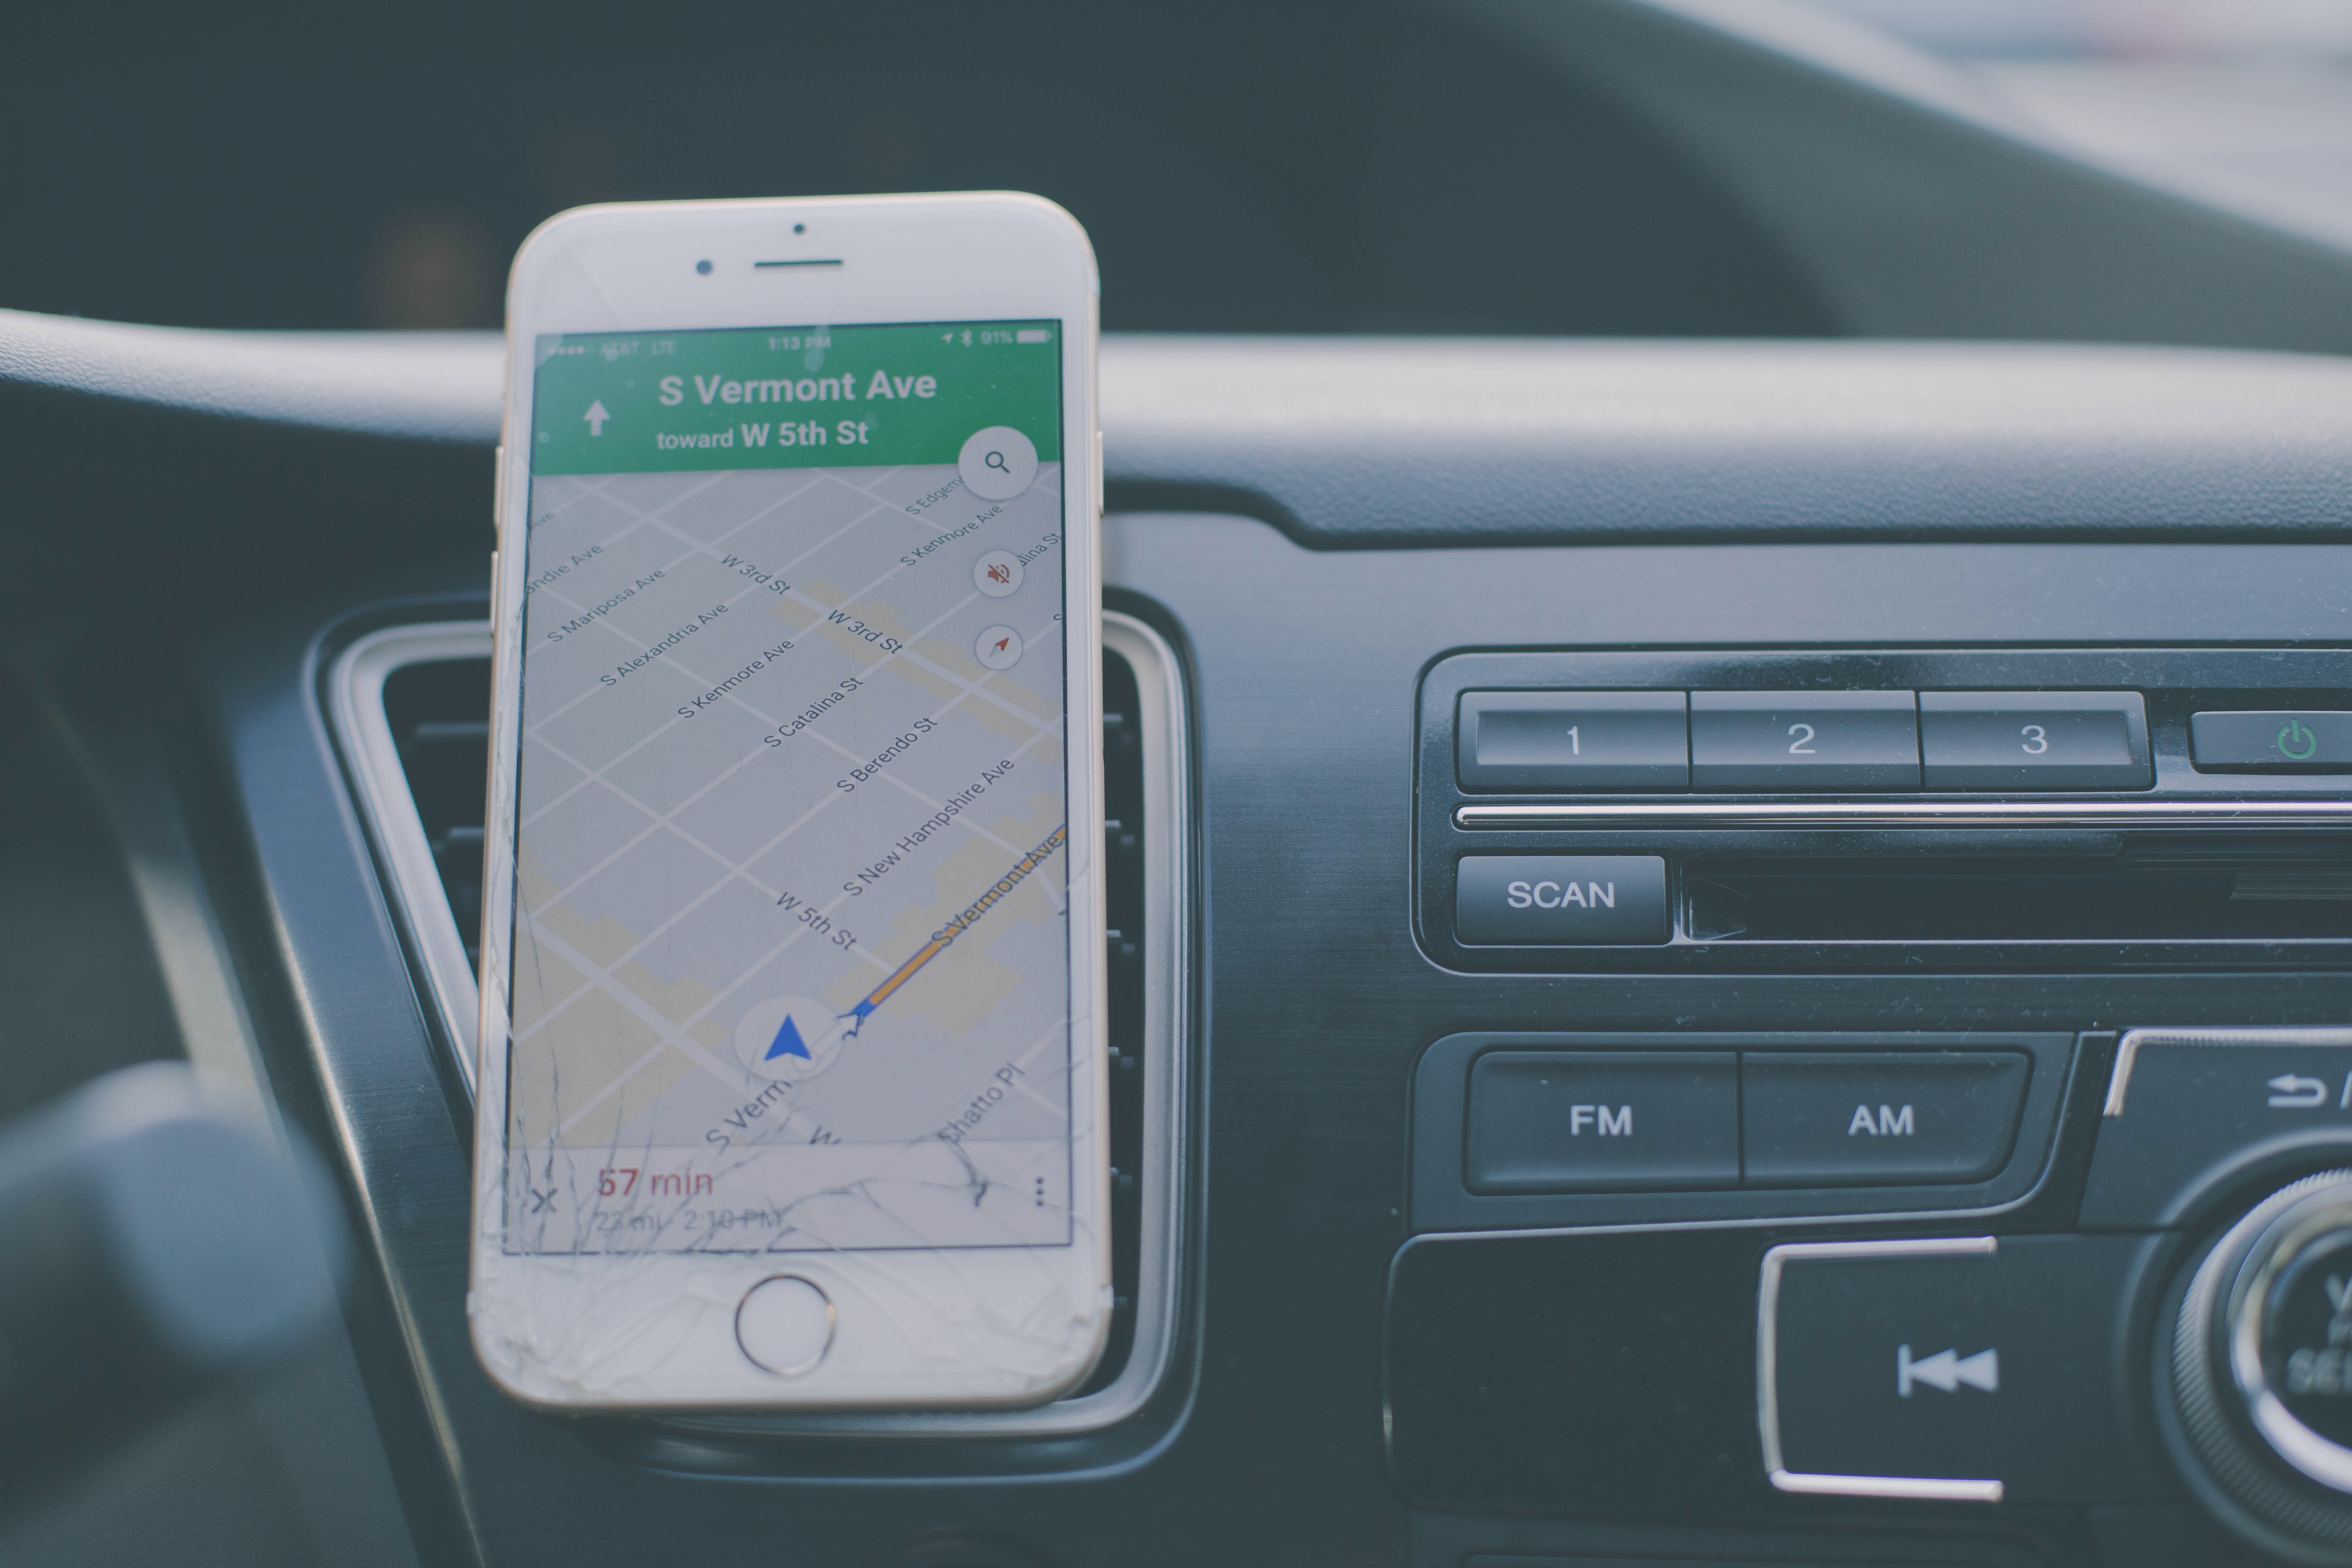 silver iPhone 6 on front of car aircon